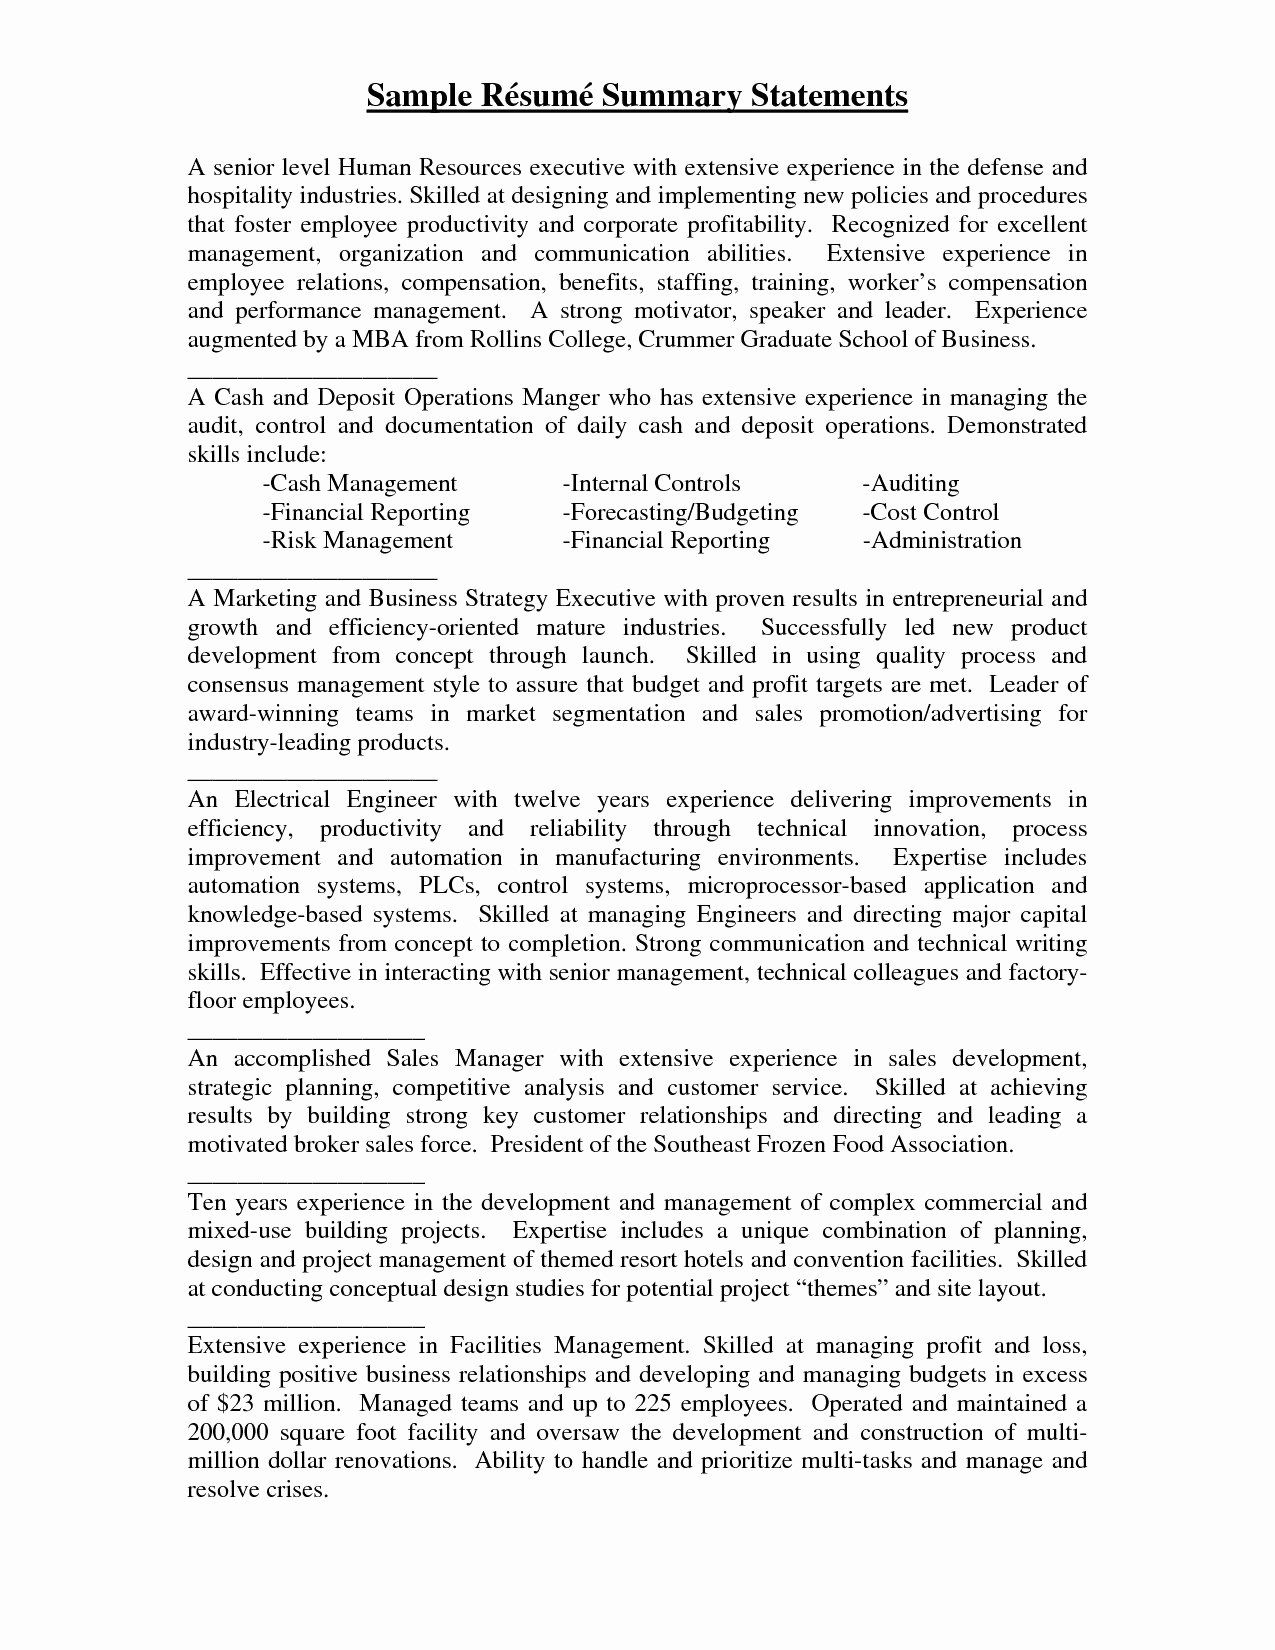 Resume Summary Statement Examples 2017 Human Resources